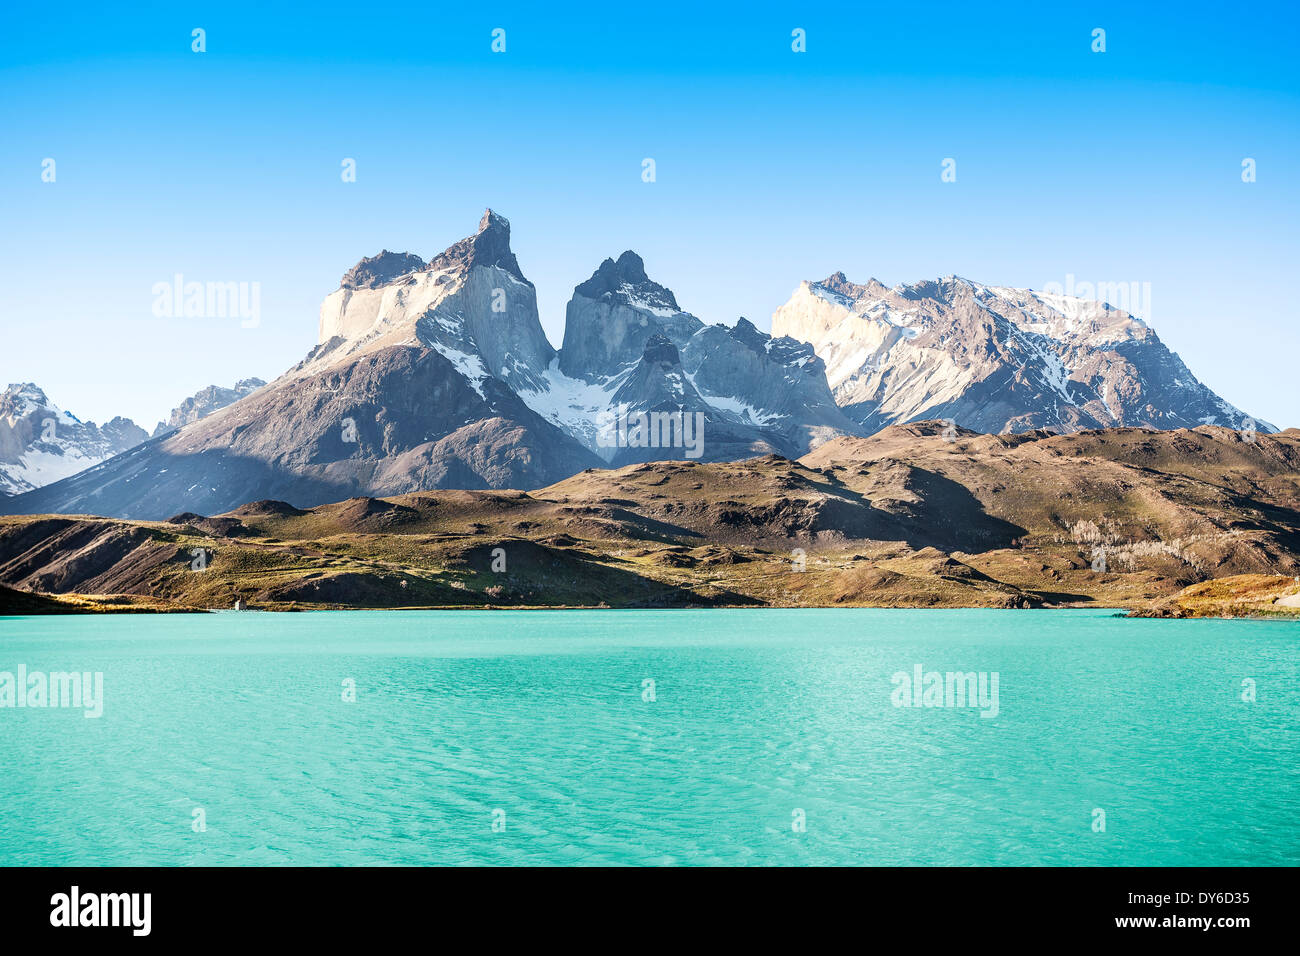 Pehoe Bergsee und Los Cuernos (The Horns), Nationalpark Torres del Paine, Chile. Stockbild